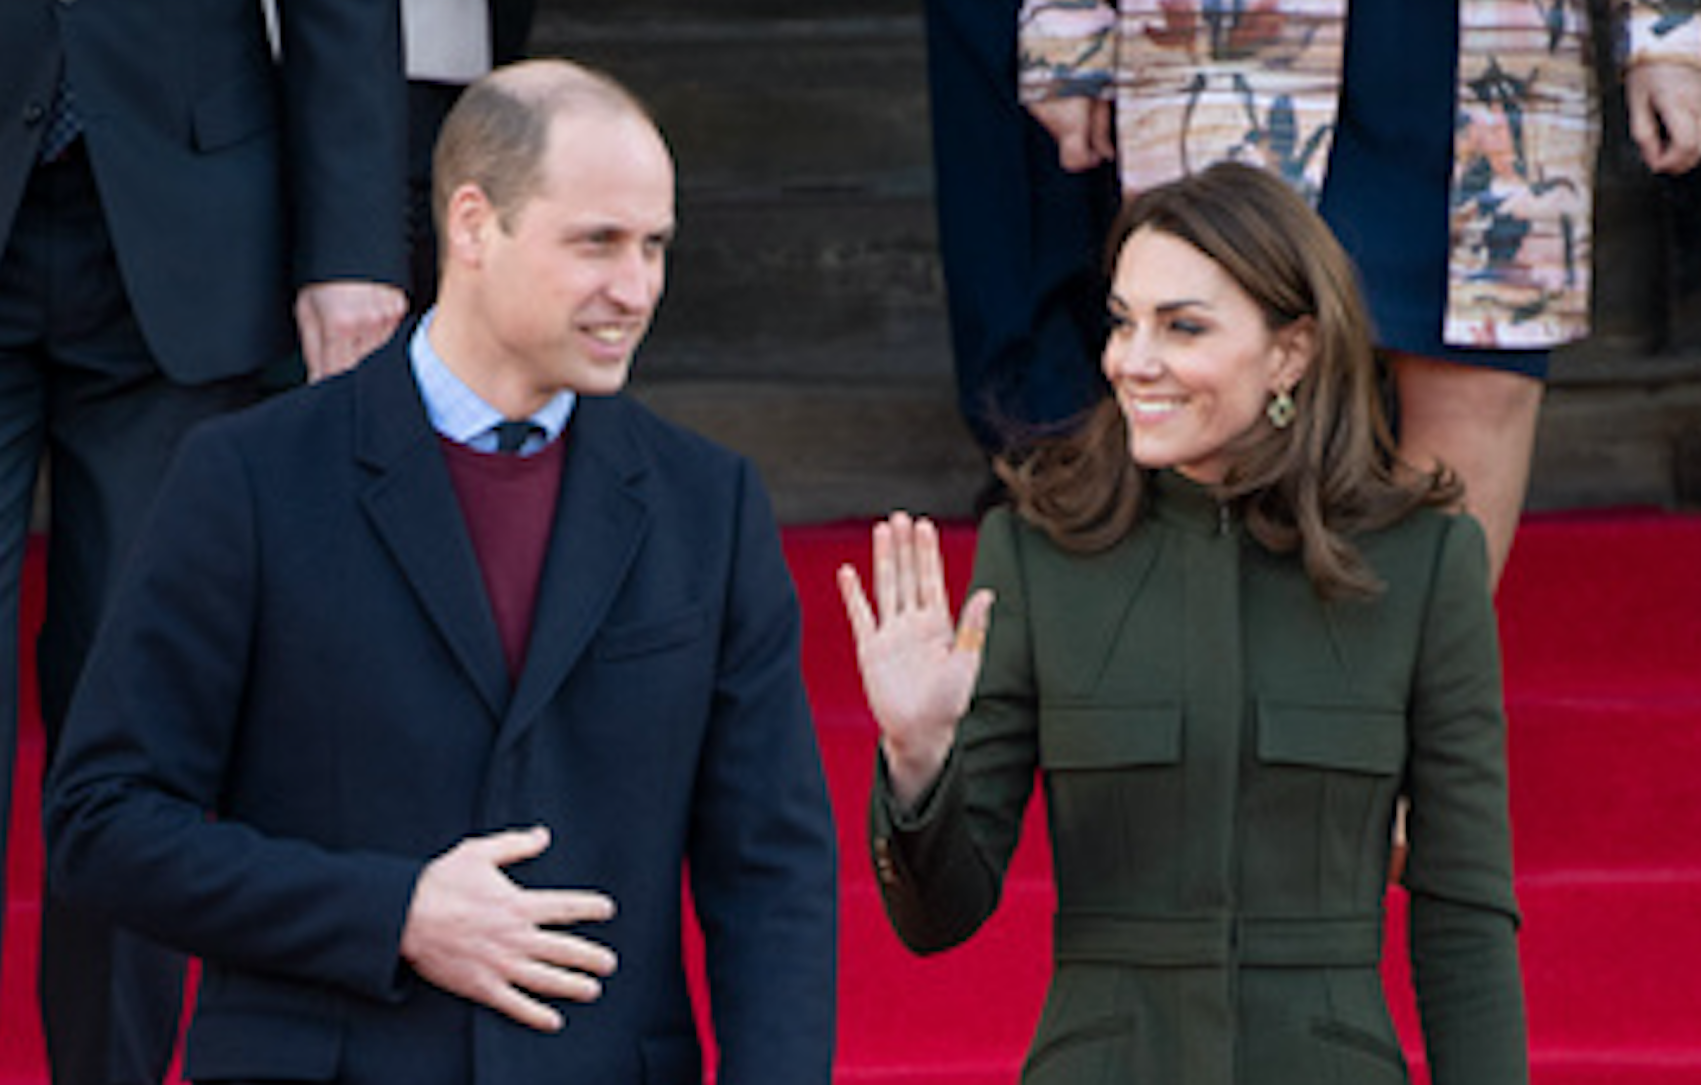 Prince William reveals he proposed to Kate Middleton after a fishing trip